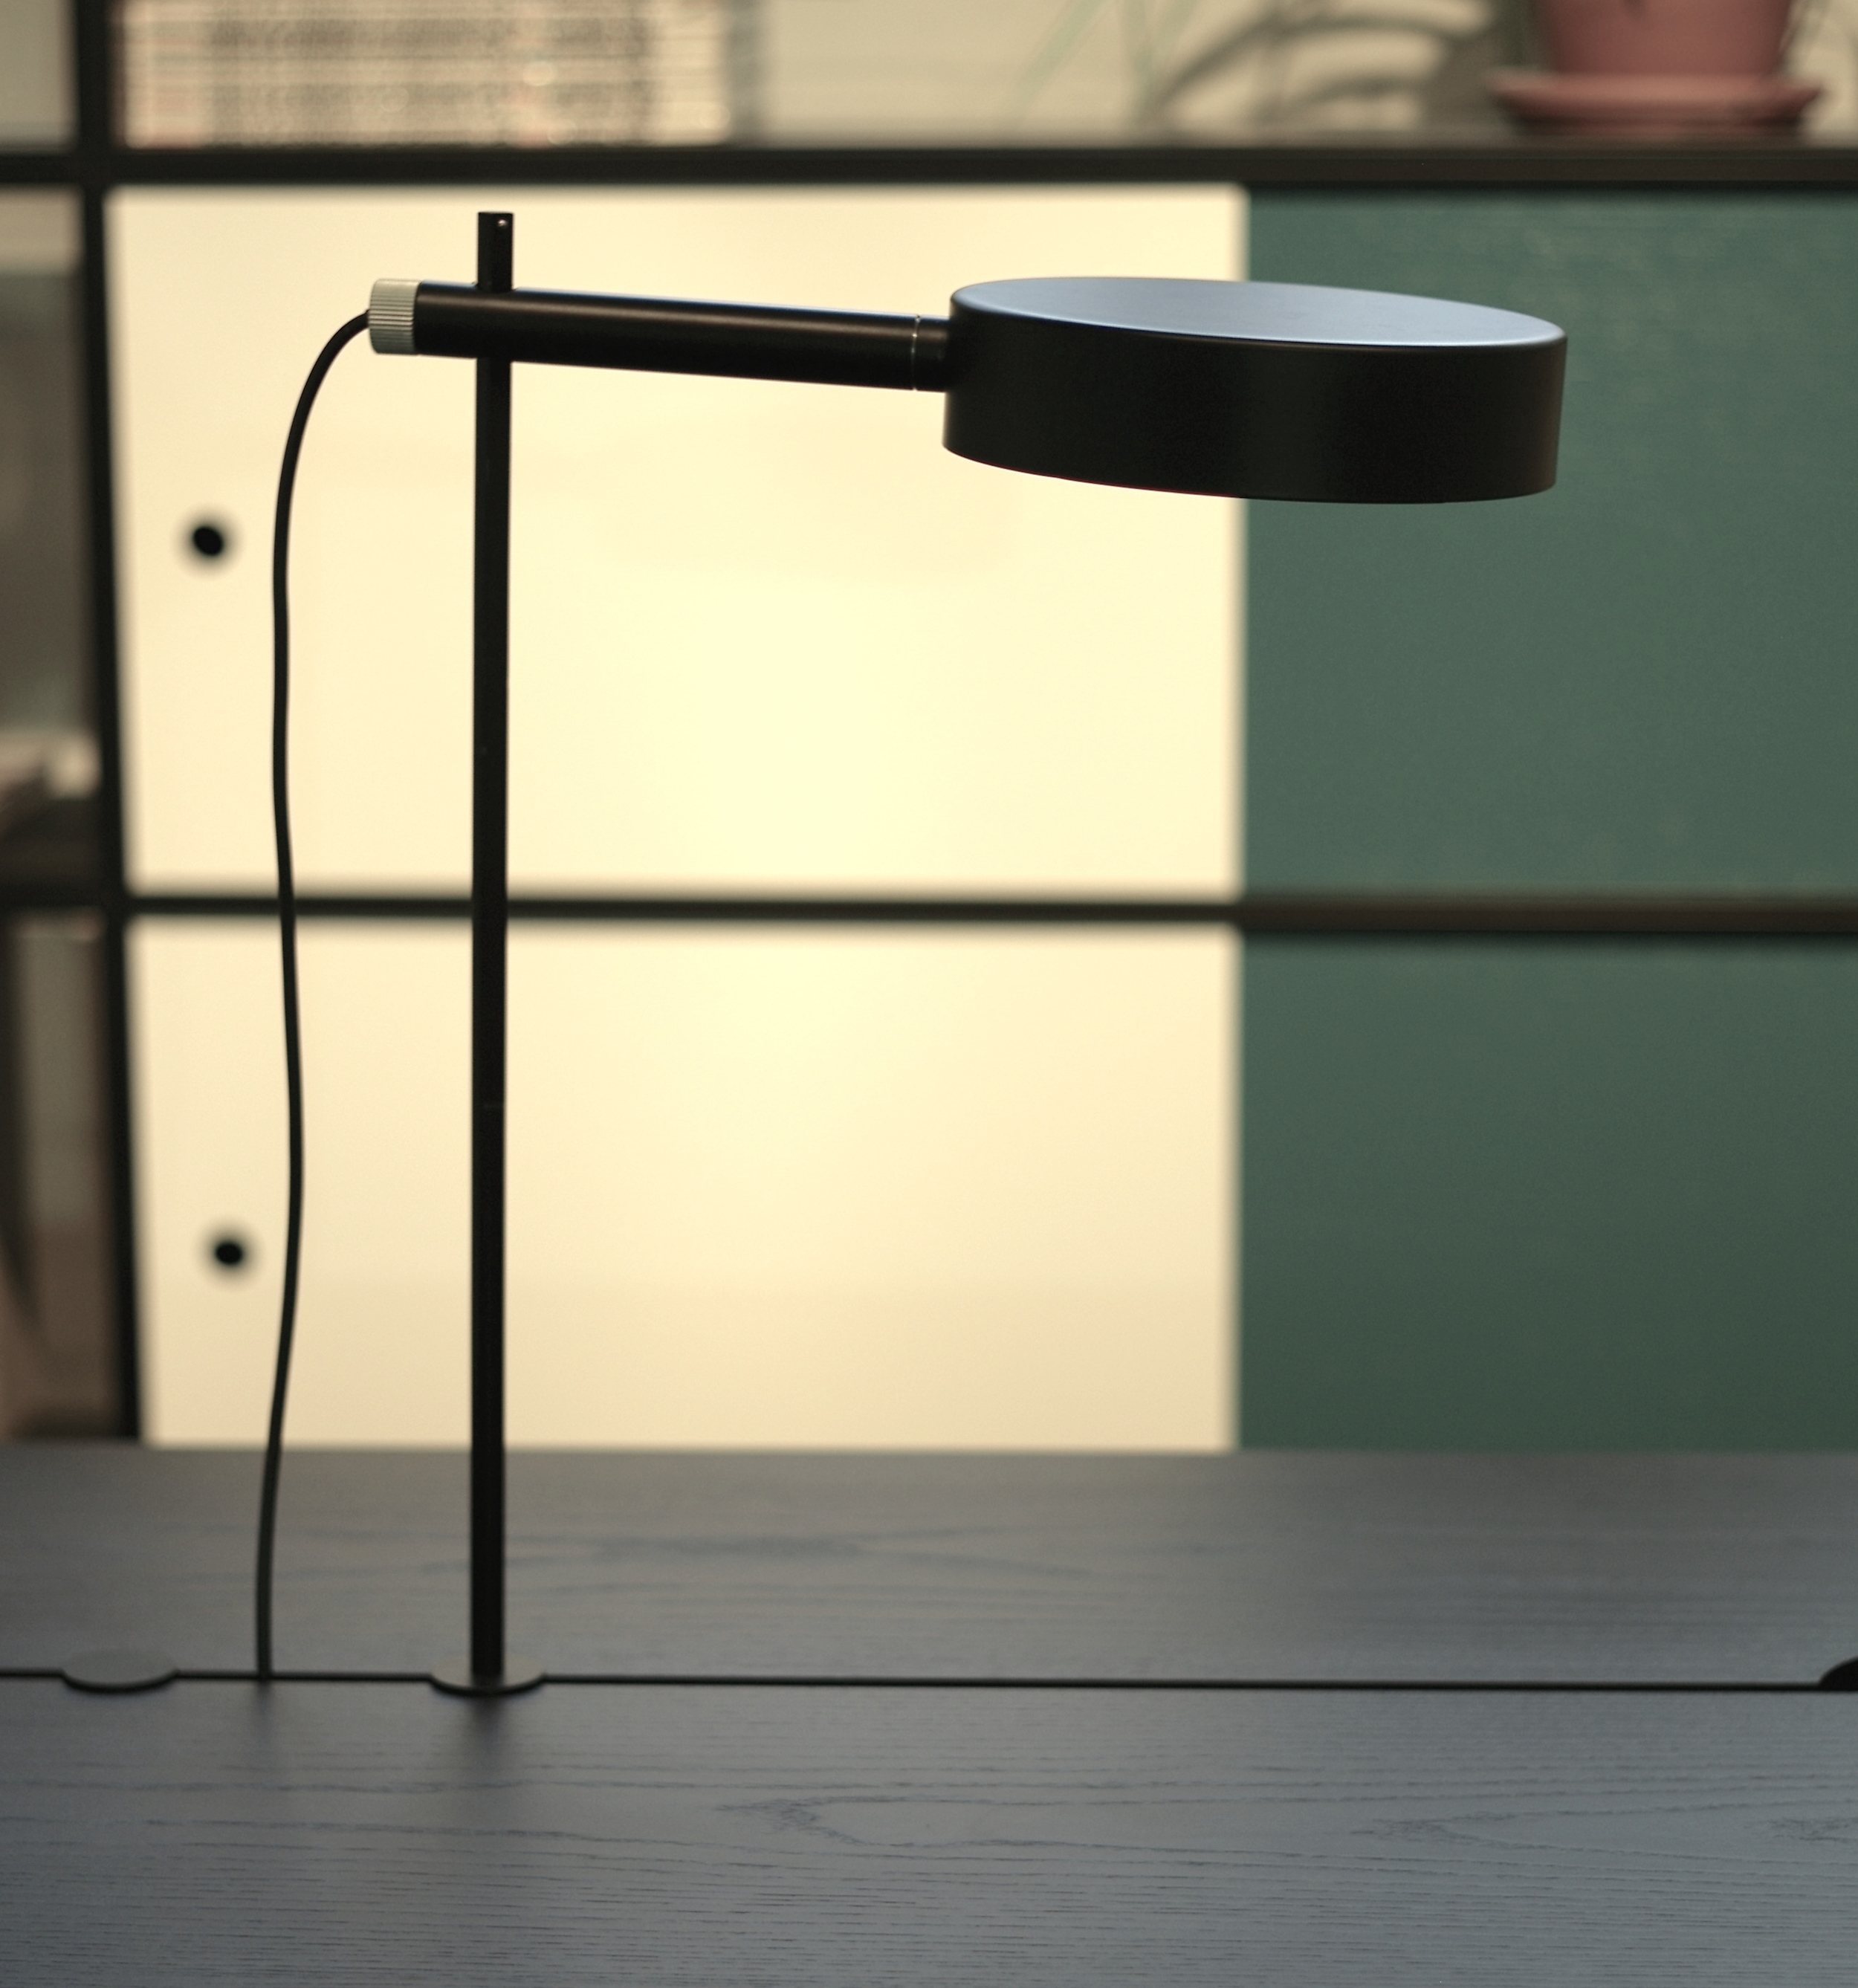 Casual snob - Max Design Desk Lamp.JPG